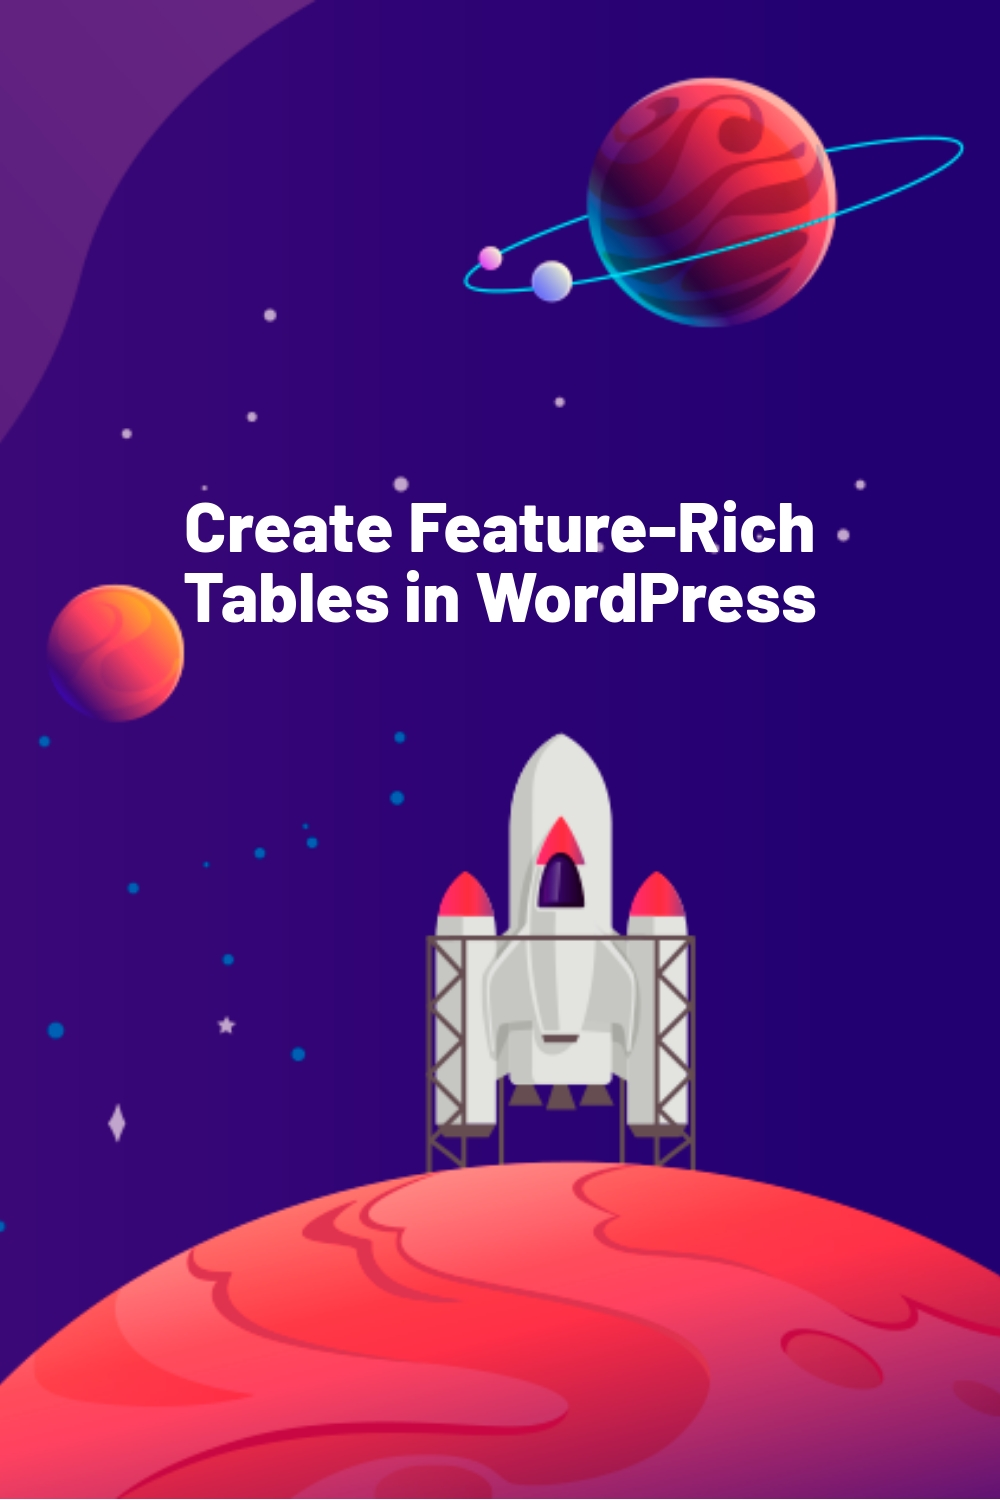 Create Feature-Rich Tables in WordPress